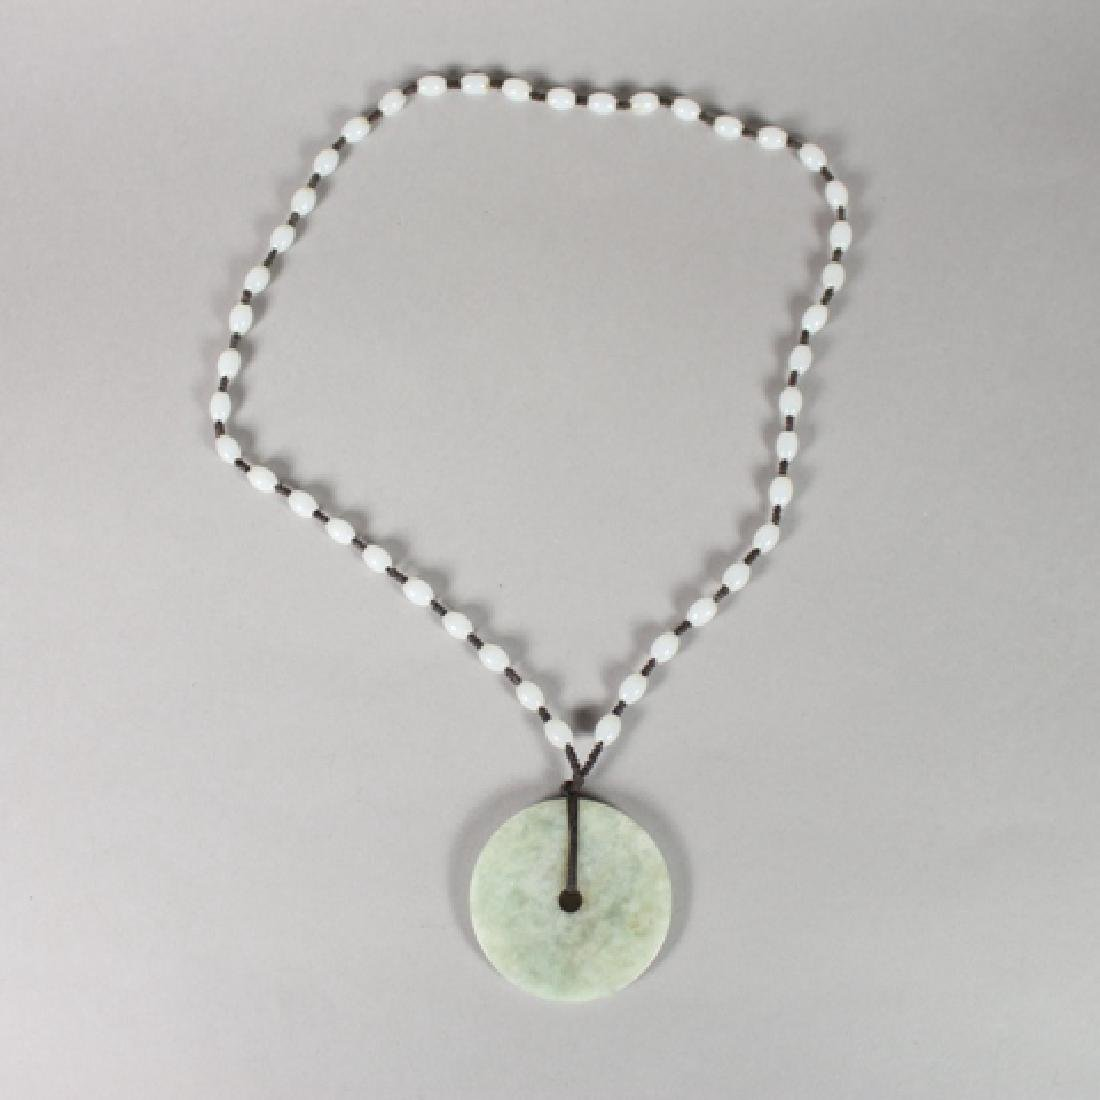 White Jade Beaded Necklaces with Figural Pendants - 3